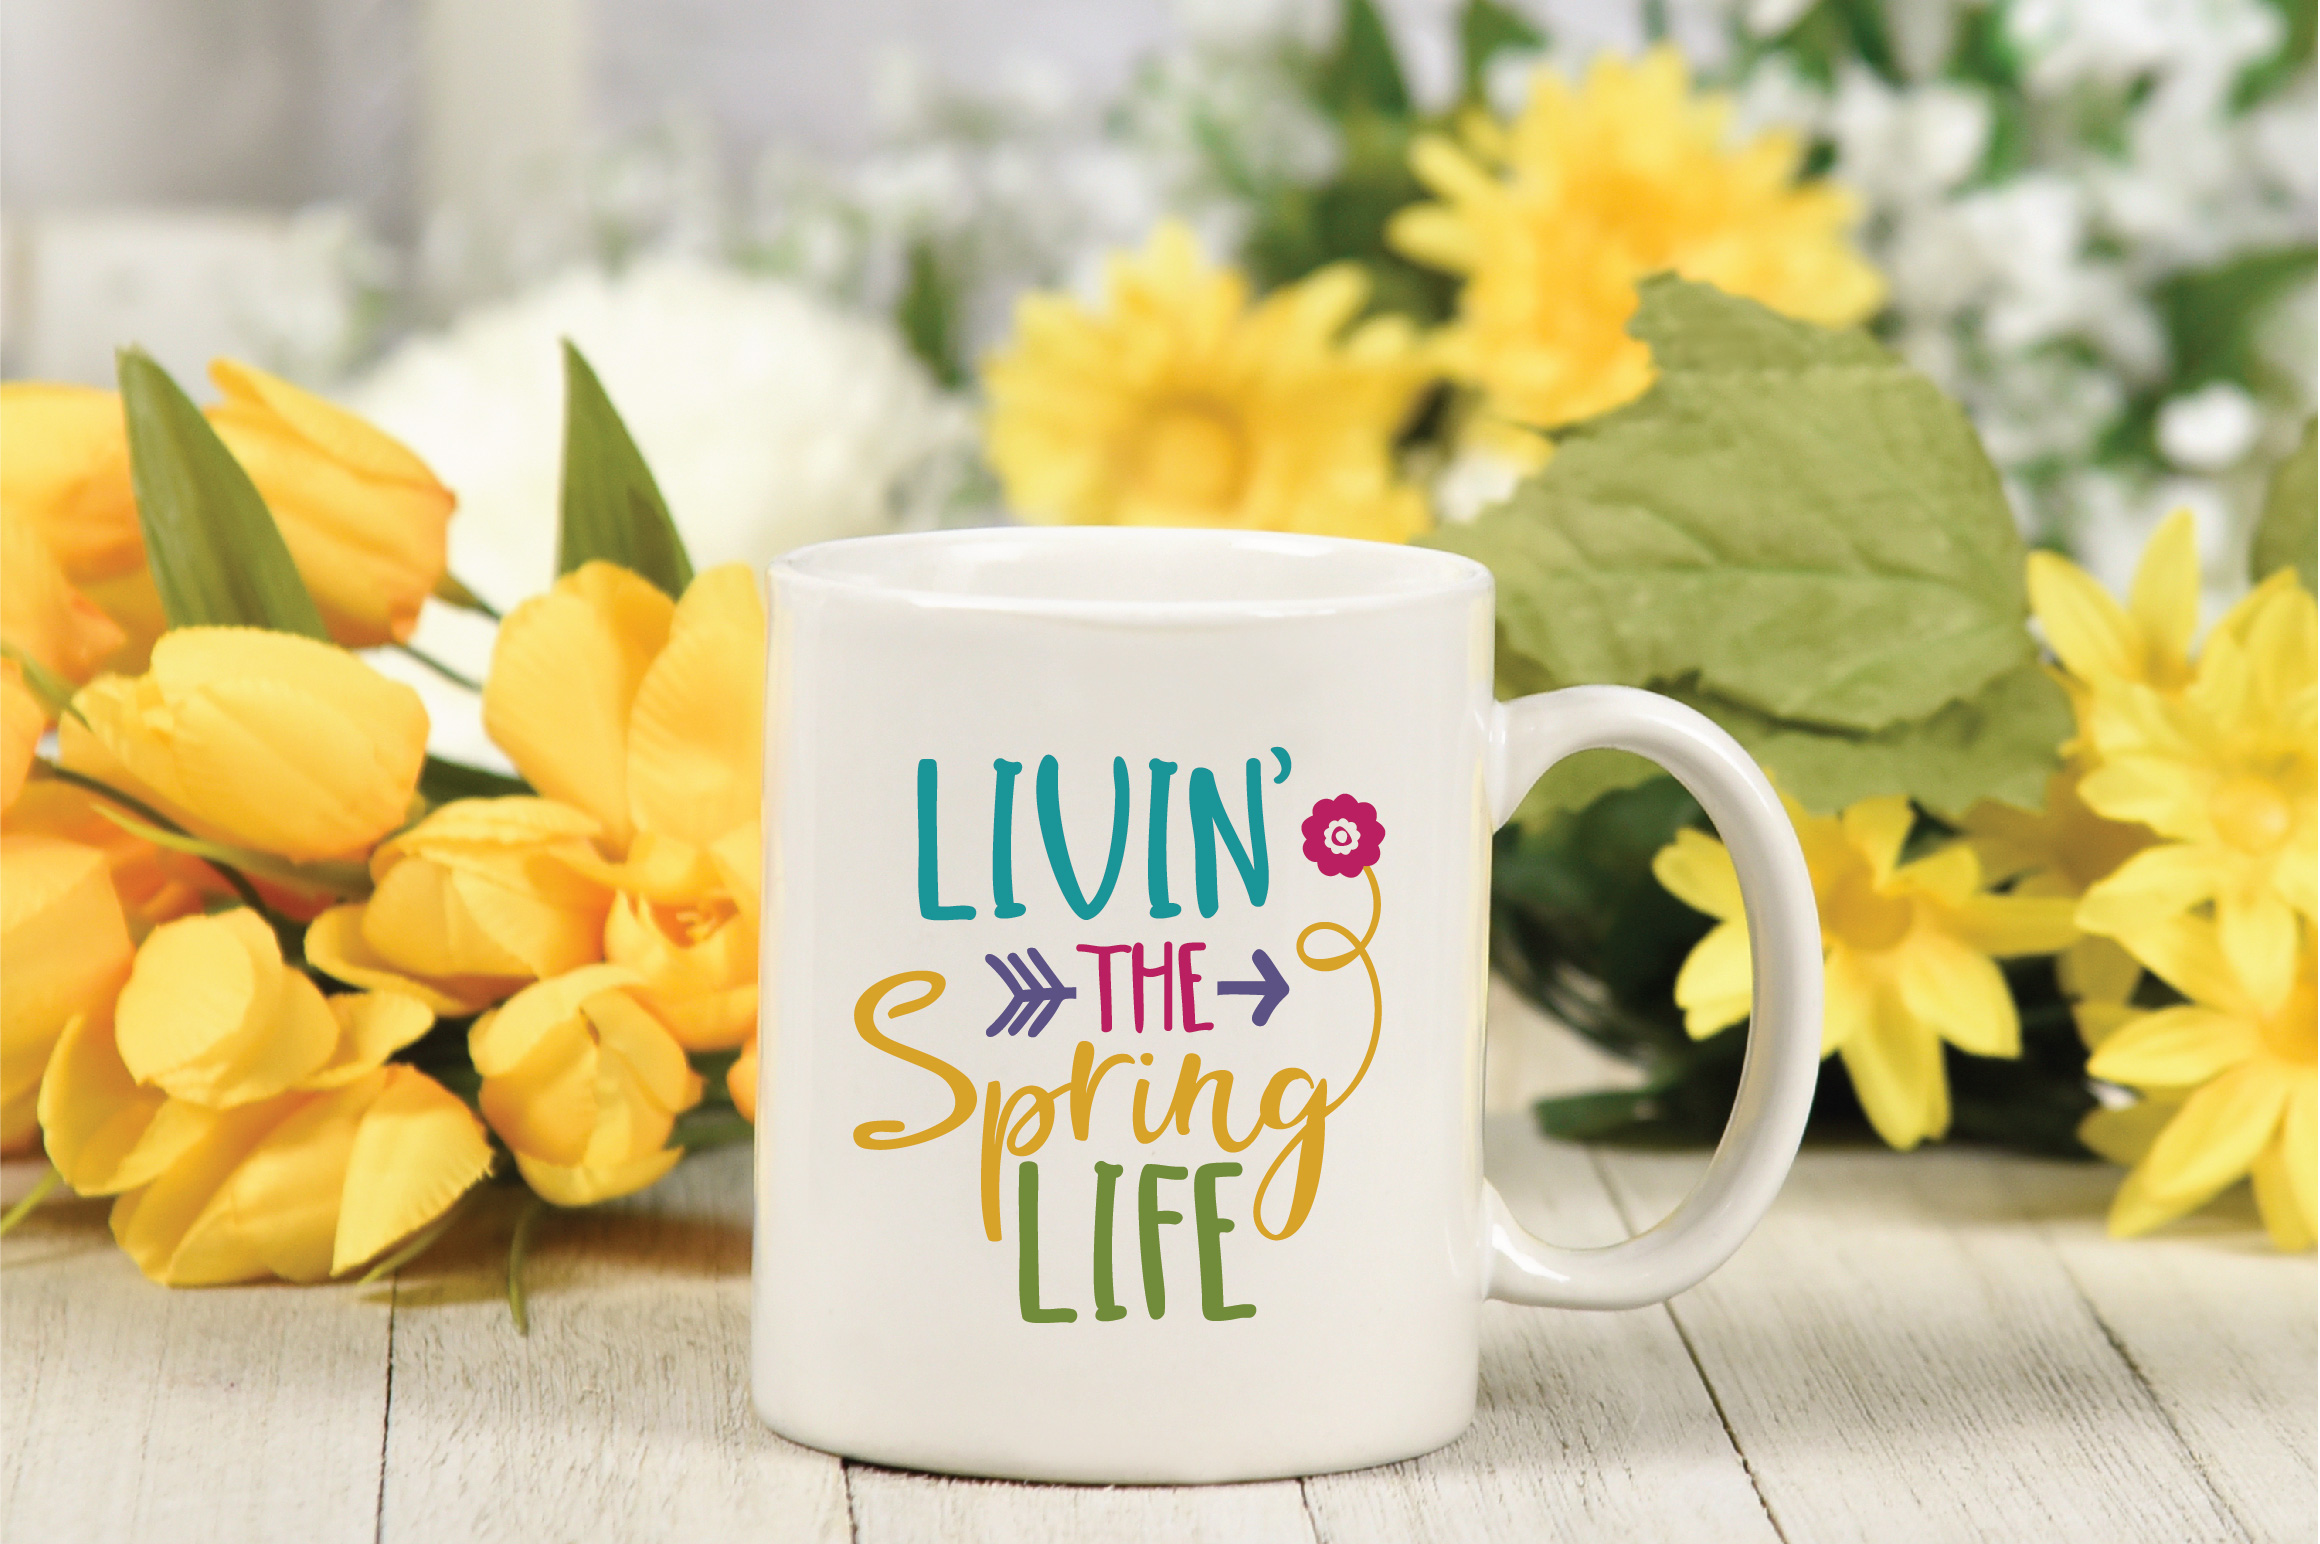 Livin' the Spring Life SVG Cut File - Spring SVG DXF EPS PNG example image 4